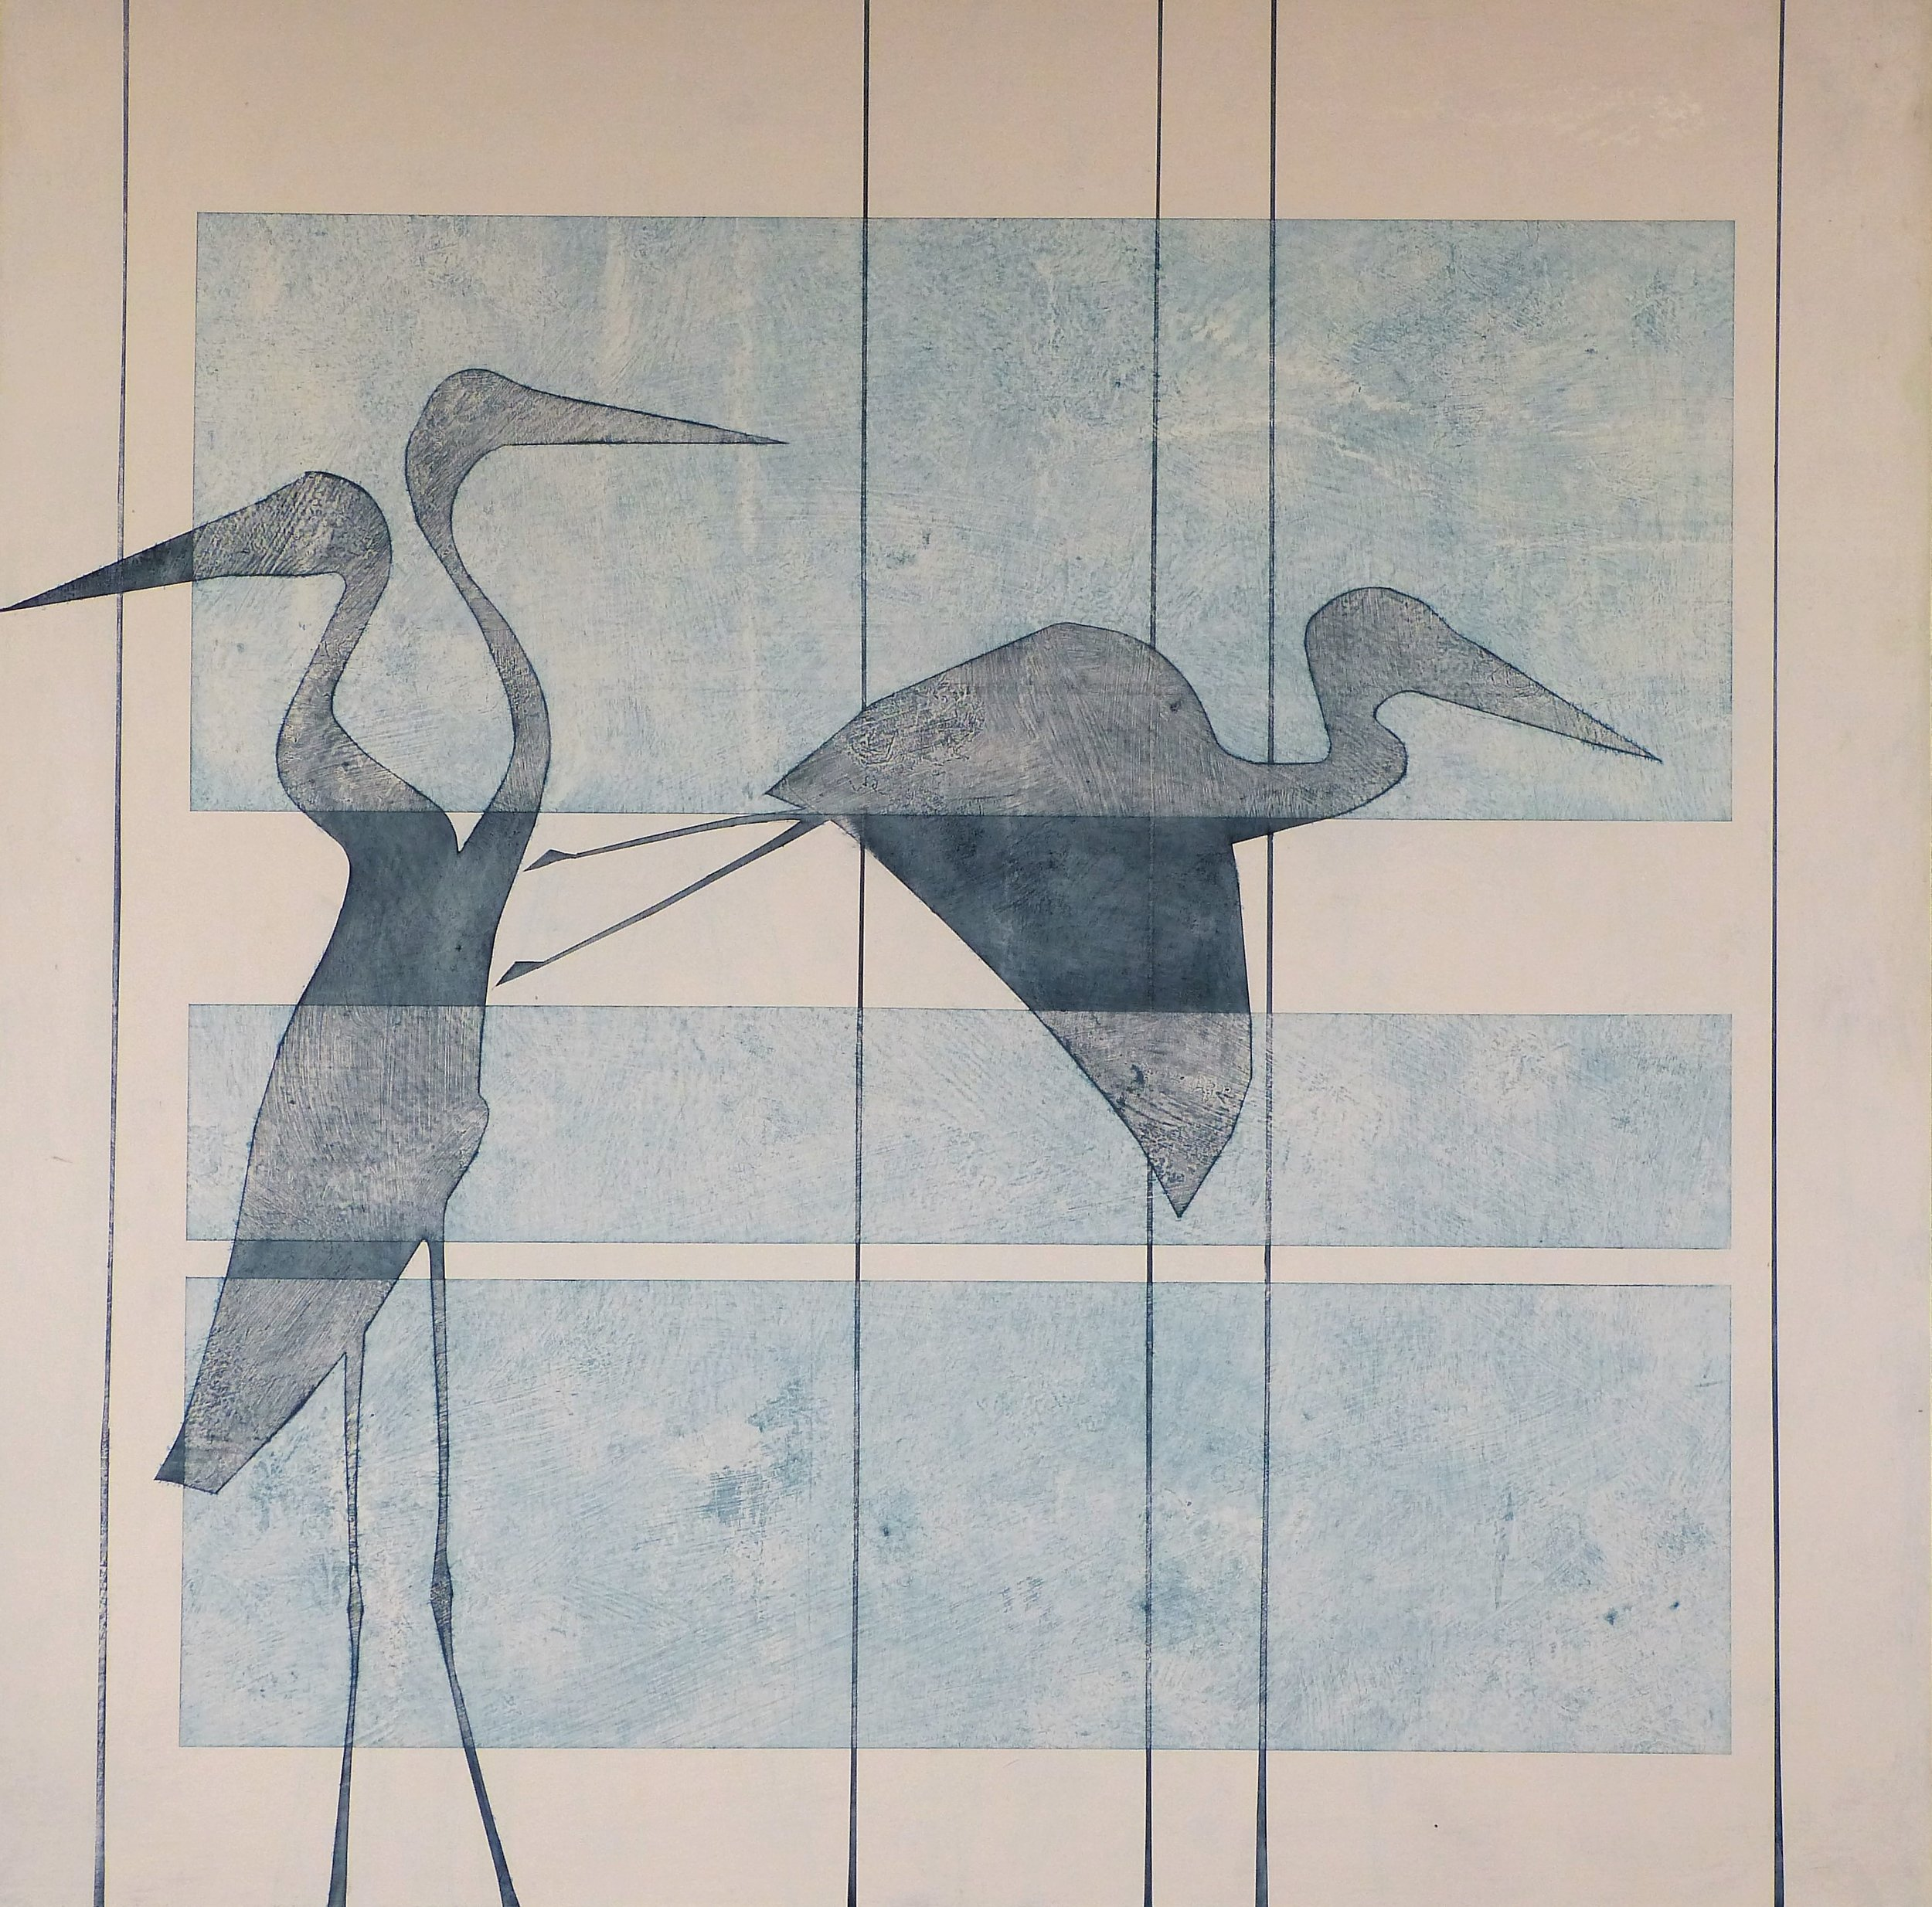 THE HERON CLAN - They make home on the Great RiverVigilant, attentive, intelligentStillnessA lesson in self reflectionEcological care-takersThey only take what they needBeautiful and magnificent in natureGeneration after generation after generation.